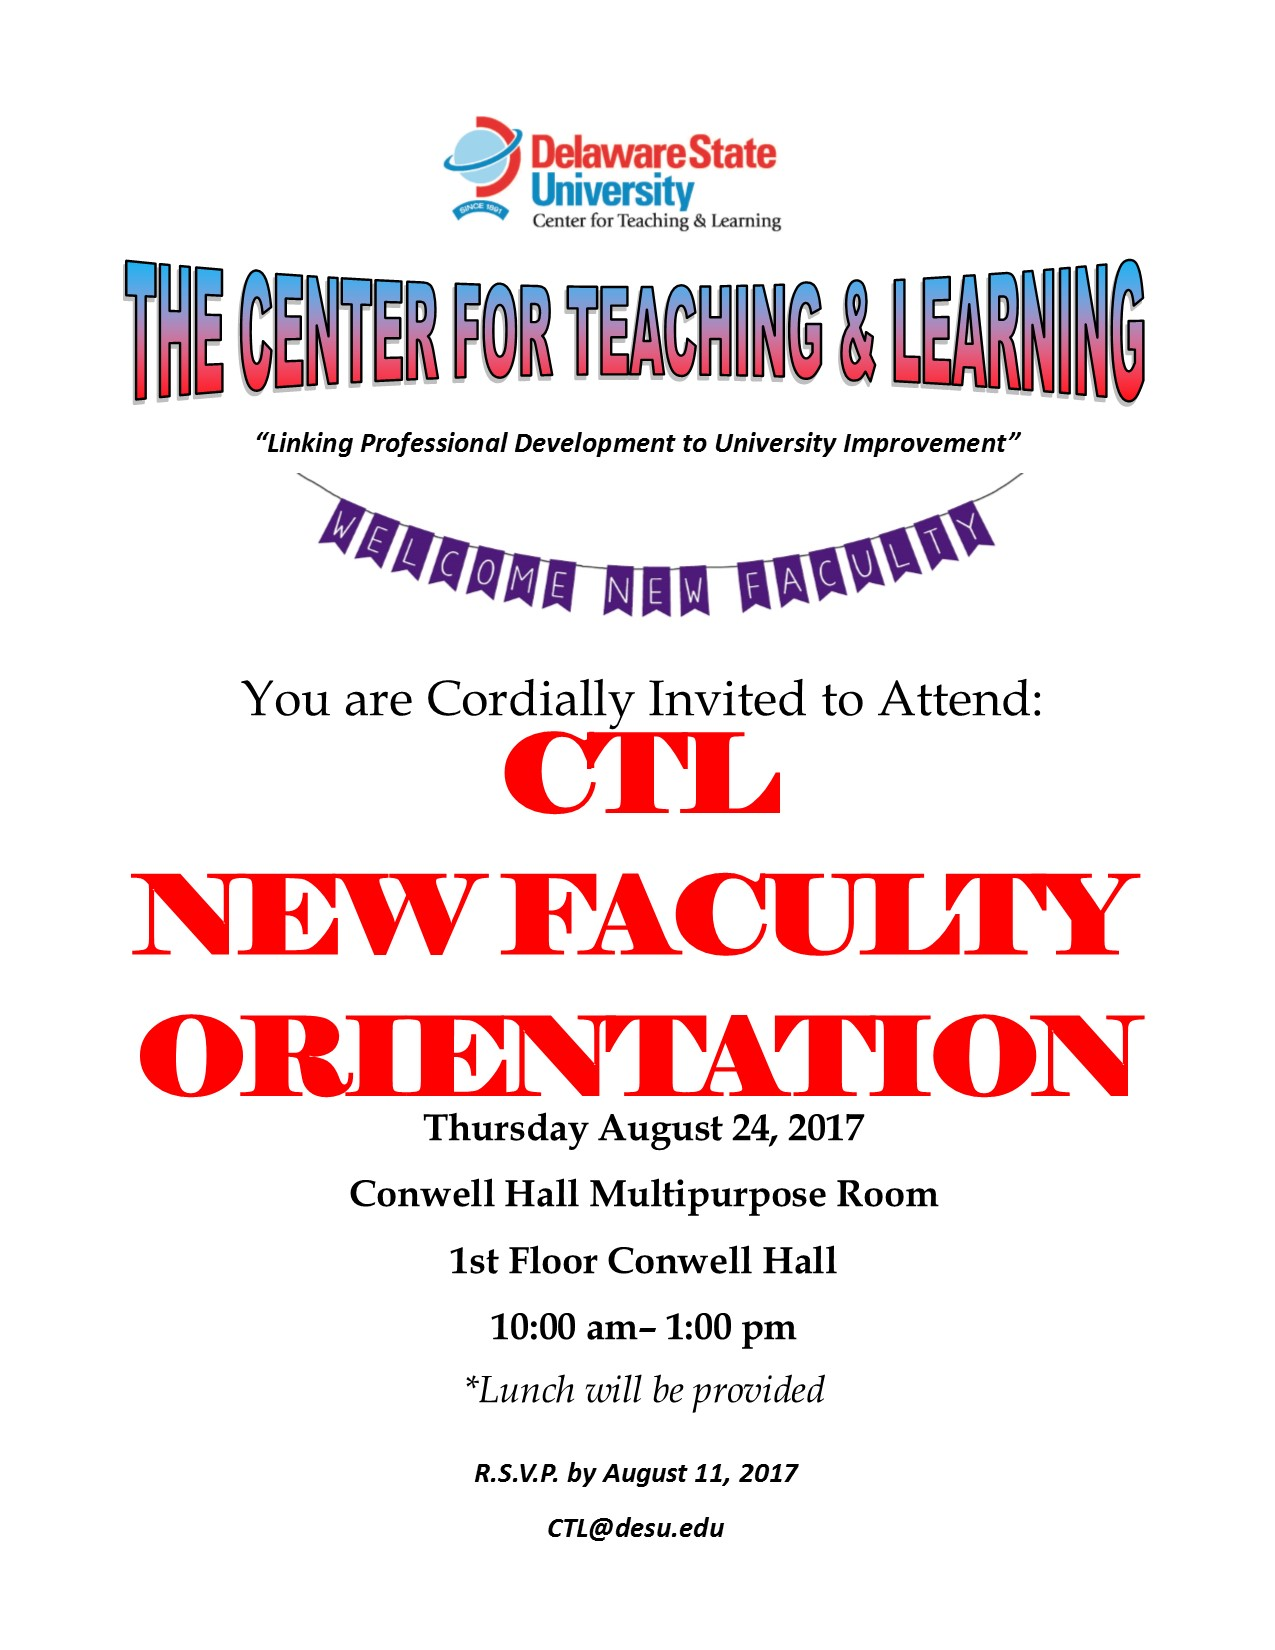 2017 New Faculty Orientation